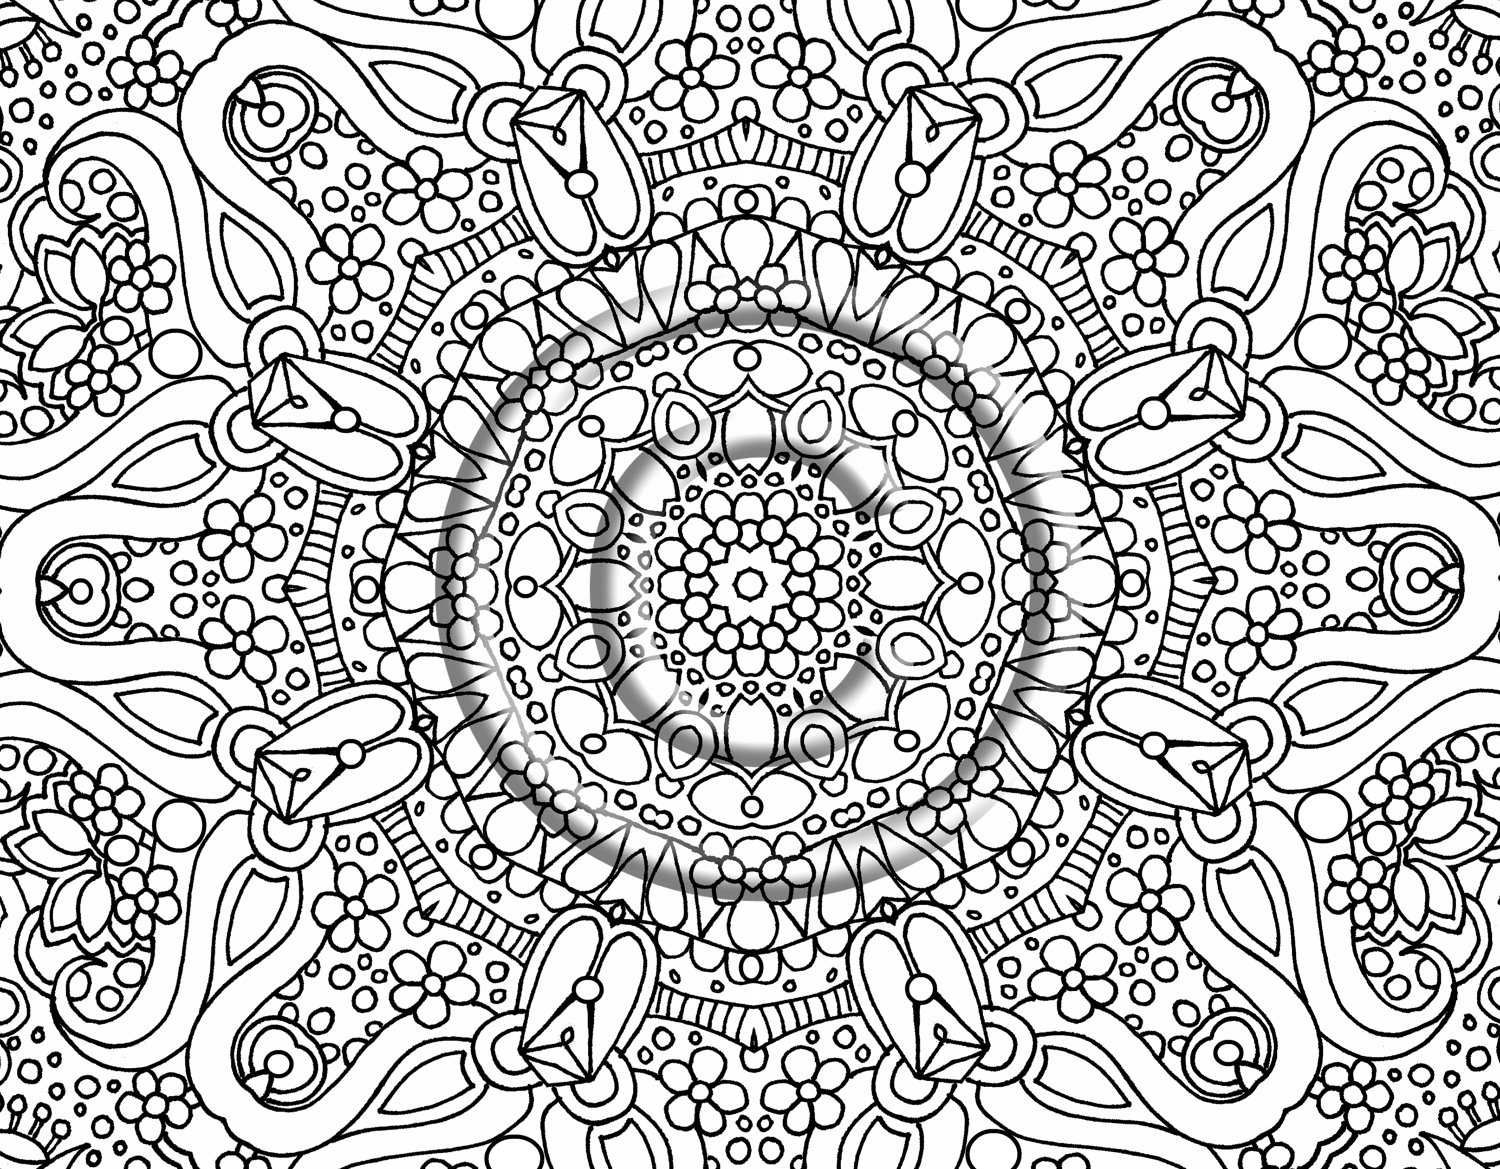 Difficult Coloring Pages Coloring Pages Gallery – Free Coloring Sheets